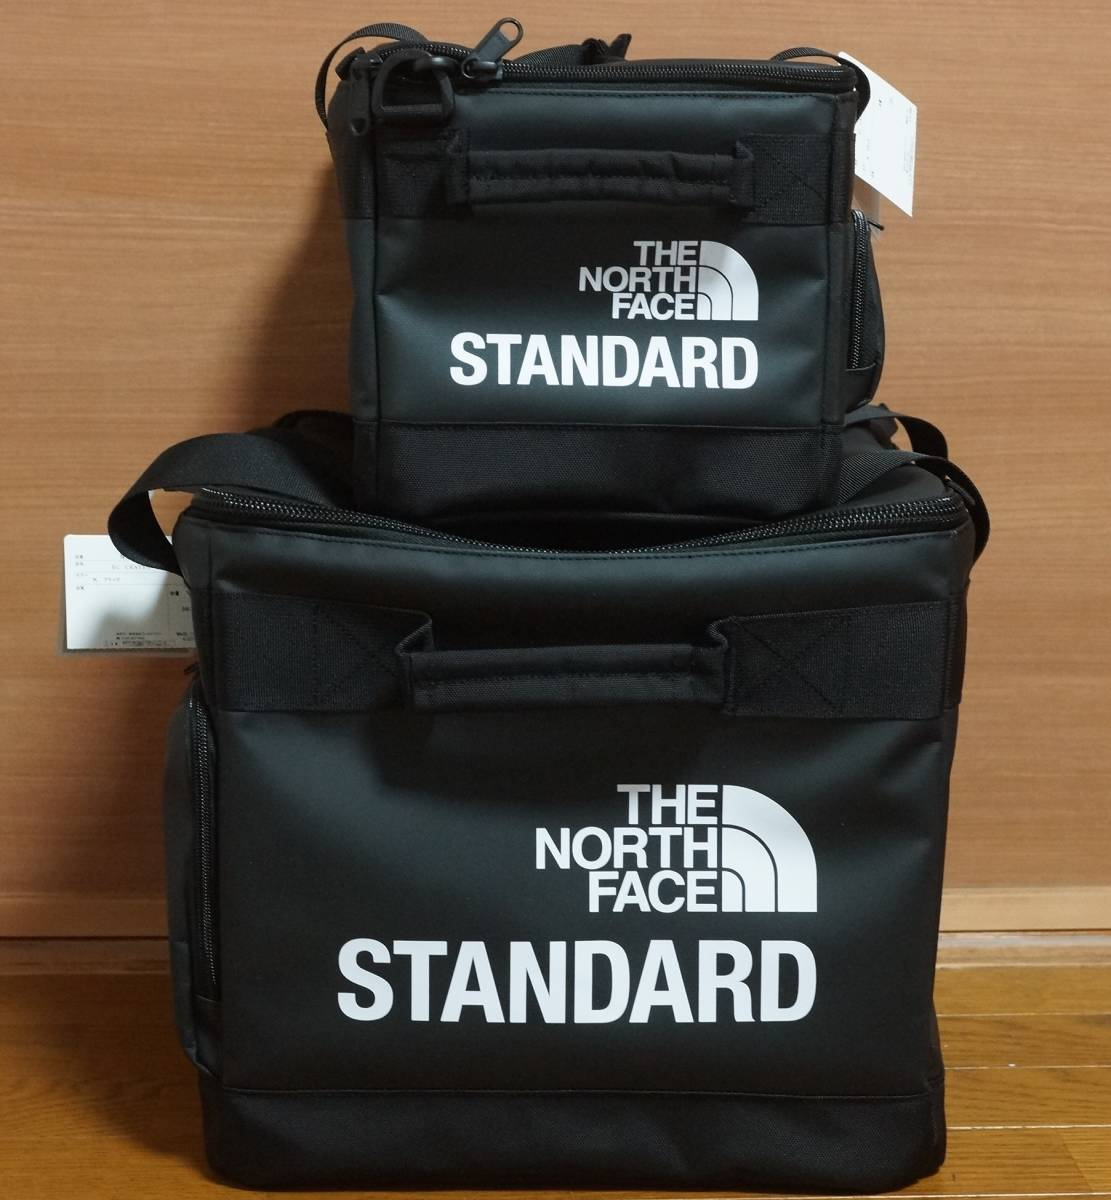 THE NORTH FACE STANDARD Limited record bag for 12inch & 7inch セット 新品未使用 国内正規品 vinyls NM81871 NM81870 レコードバッグ